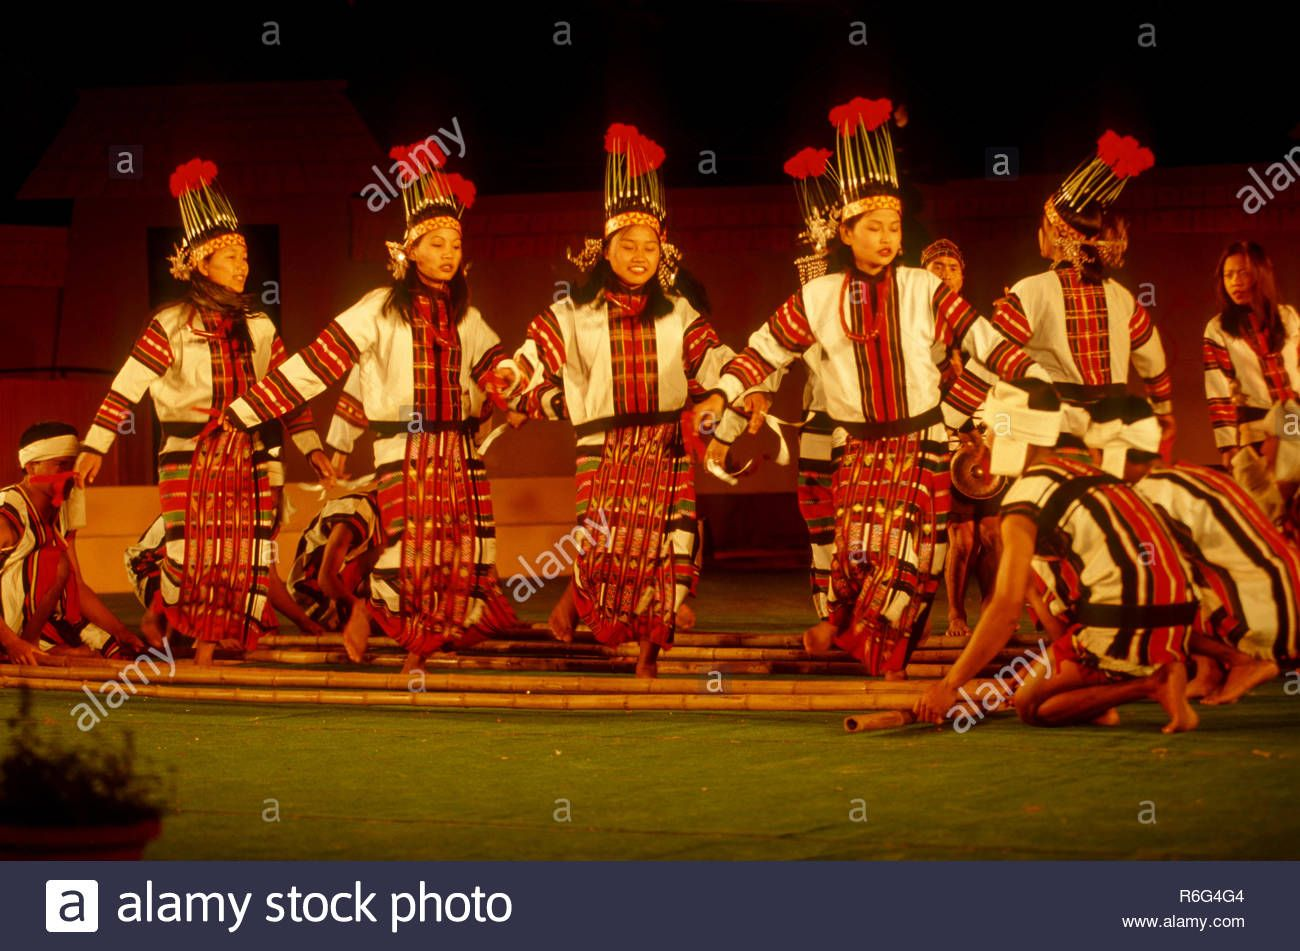 Pin On Dress And Dance Form Of Eastern India Unexplored